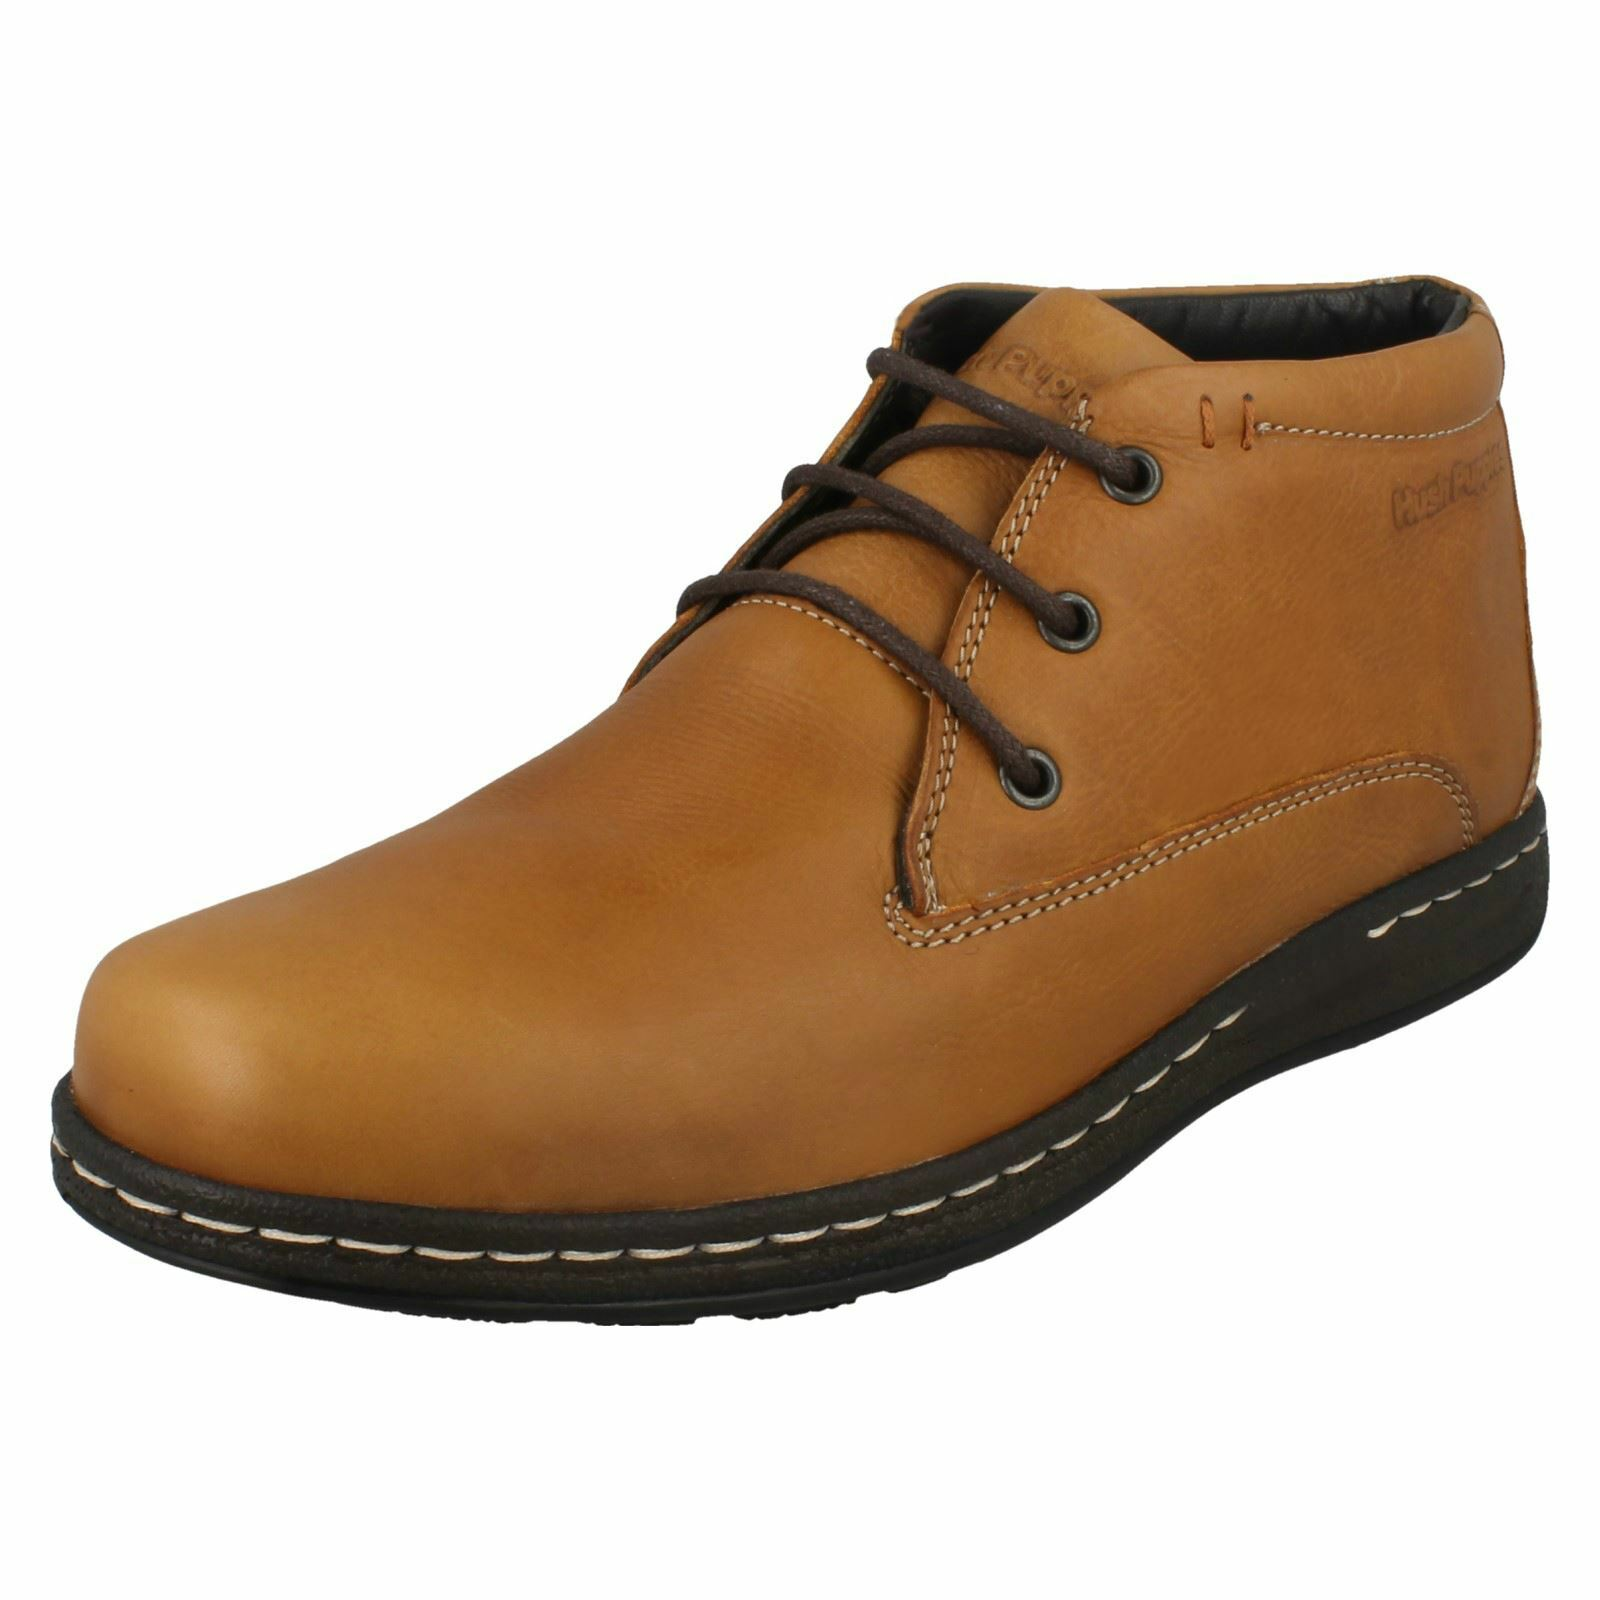 Hombre Up Hush Puppies Lace Up Hombre Ankle botas Vice Victory 142297